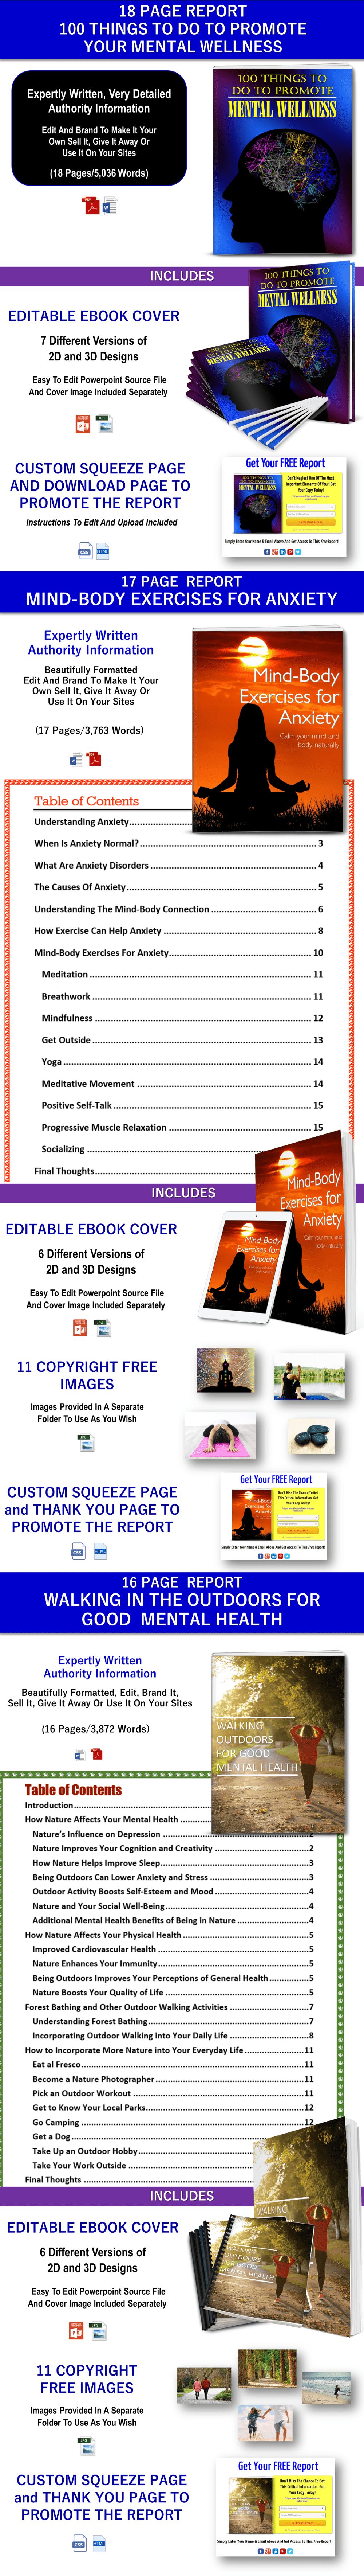 Overcome Troubles, Love For Inner Peace Content - Private Label Rights